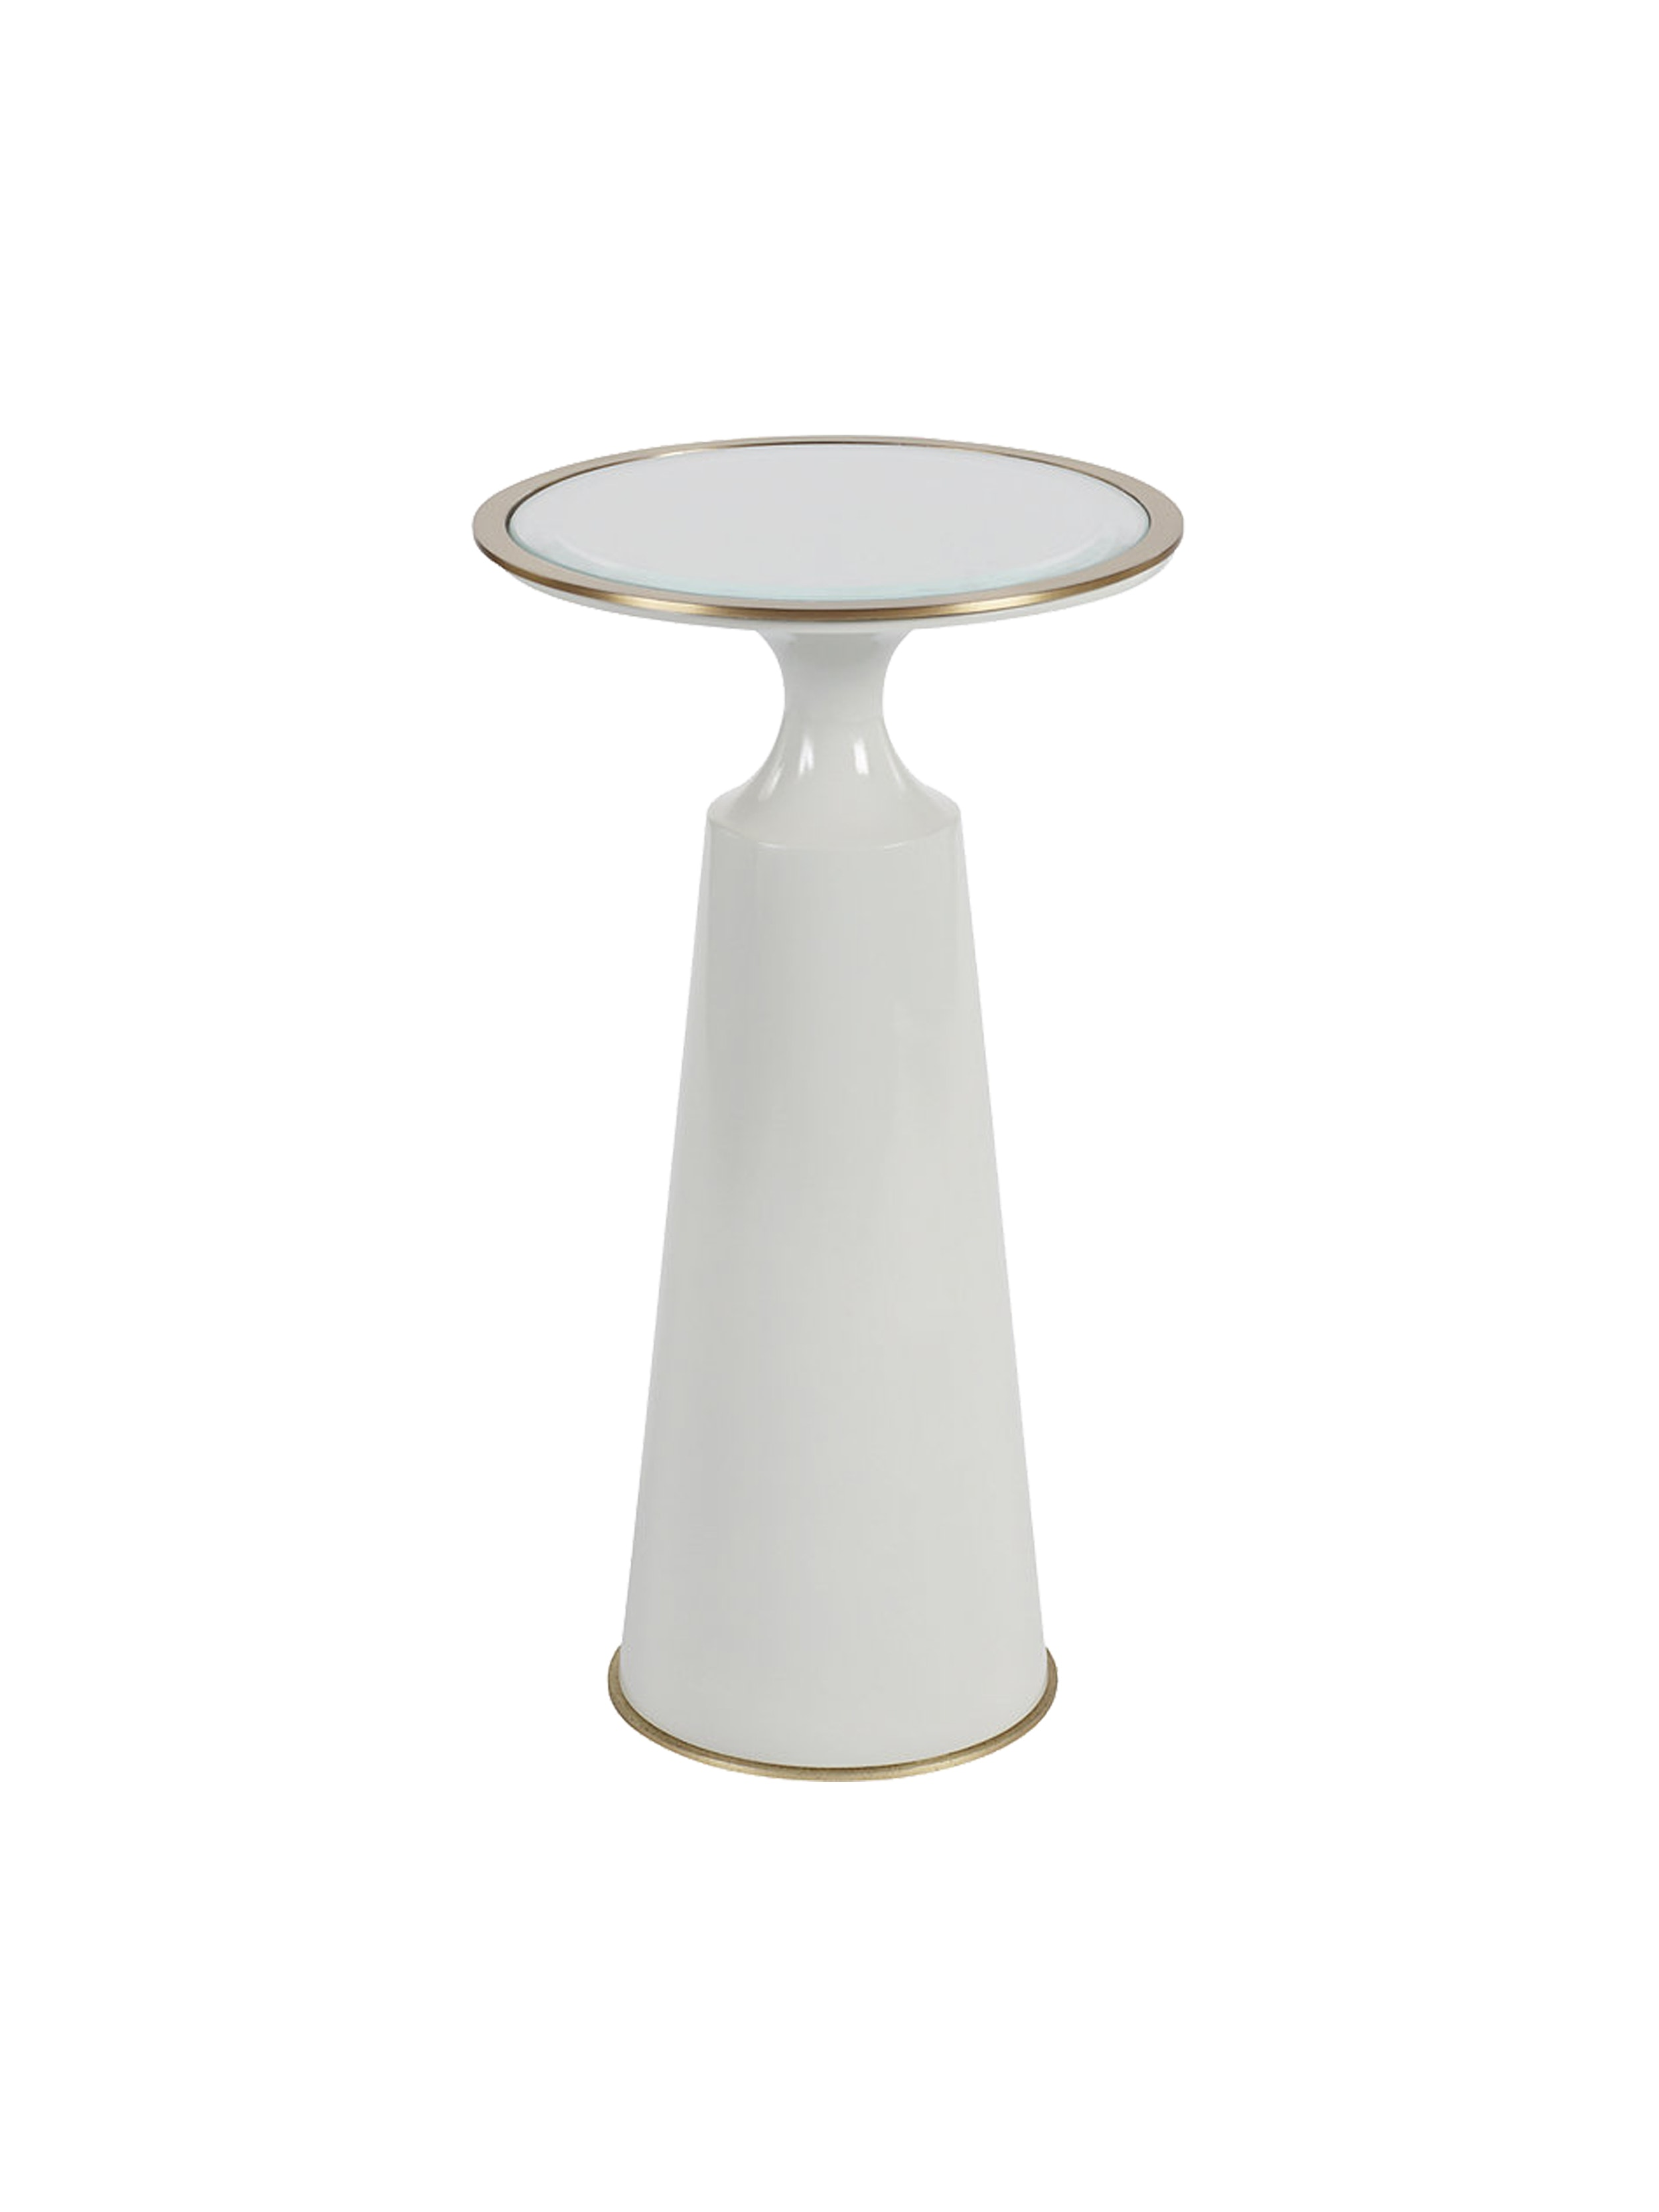 contemporary round accent table with bronze trim putnam mason furniture tables side end glass metal pedestal industrial transitional dering hall theater room modern chairs mirror